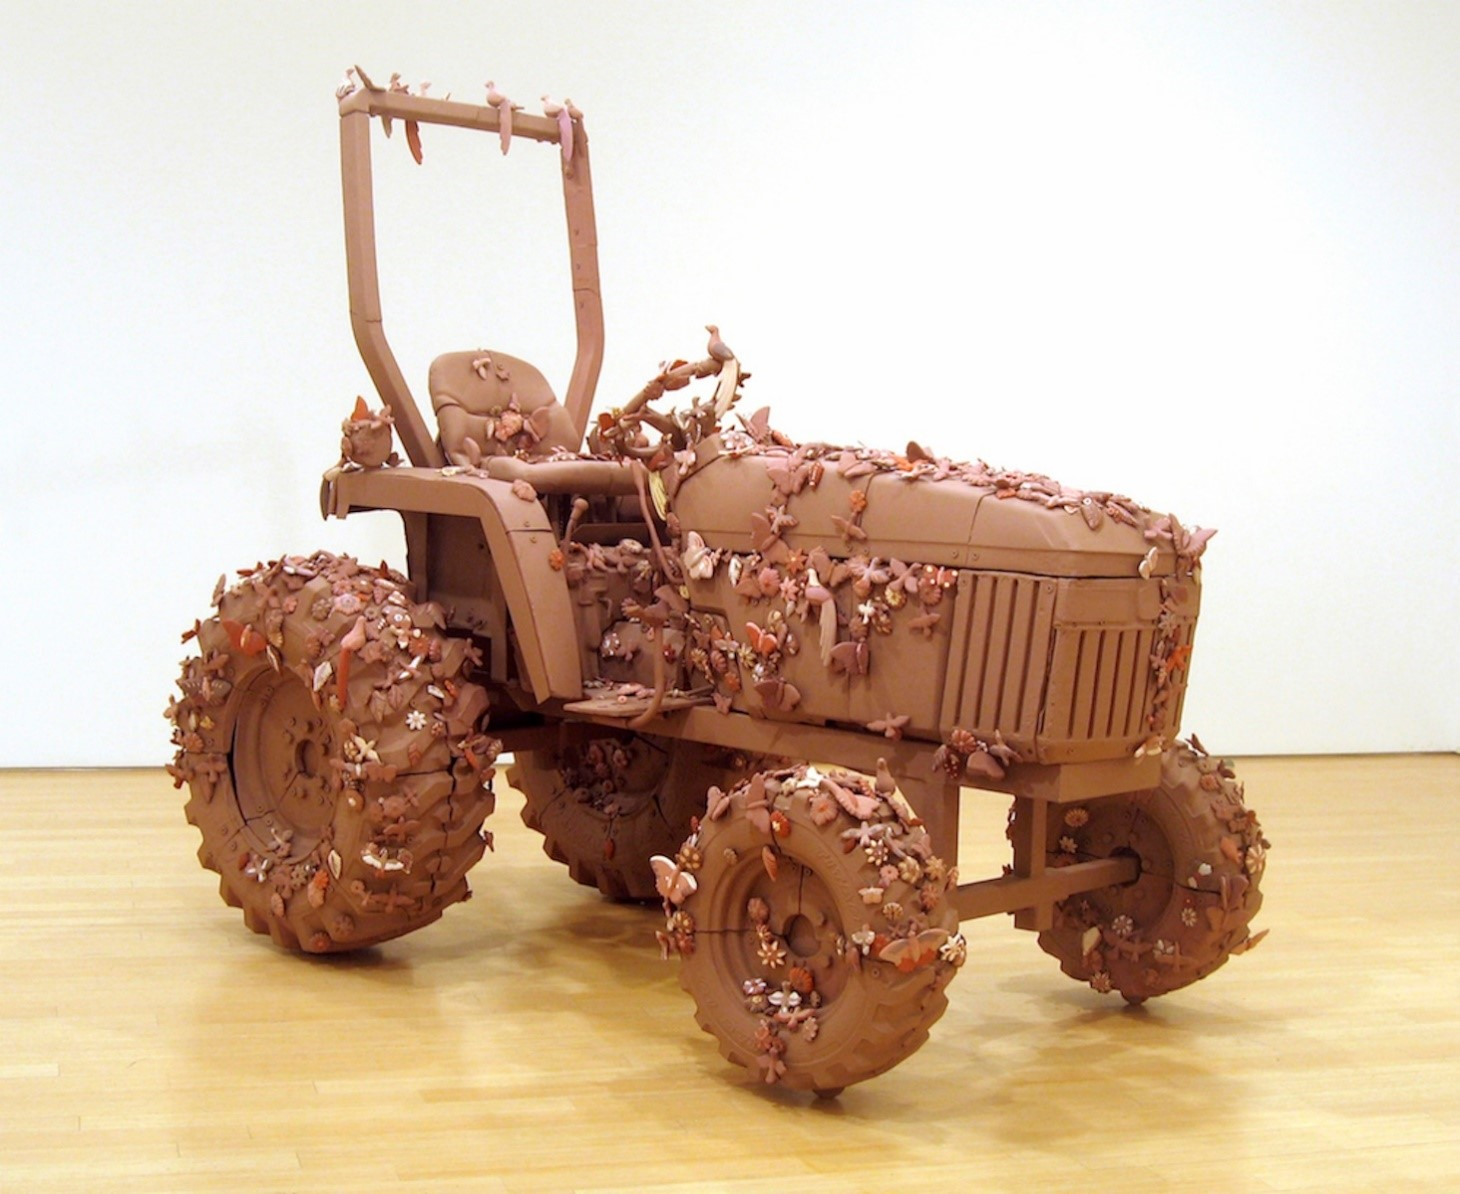 Margarita Cabrera,  John Deere Tractor Model #790 , 2007, clay, slip paint, latex acrylic and metal hardware, 100 x 60 x 96 inches. Photo Courtesy of the Artist